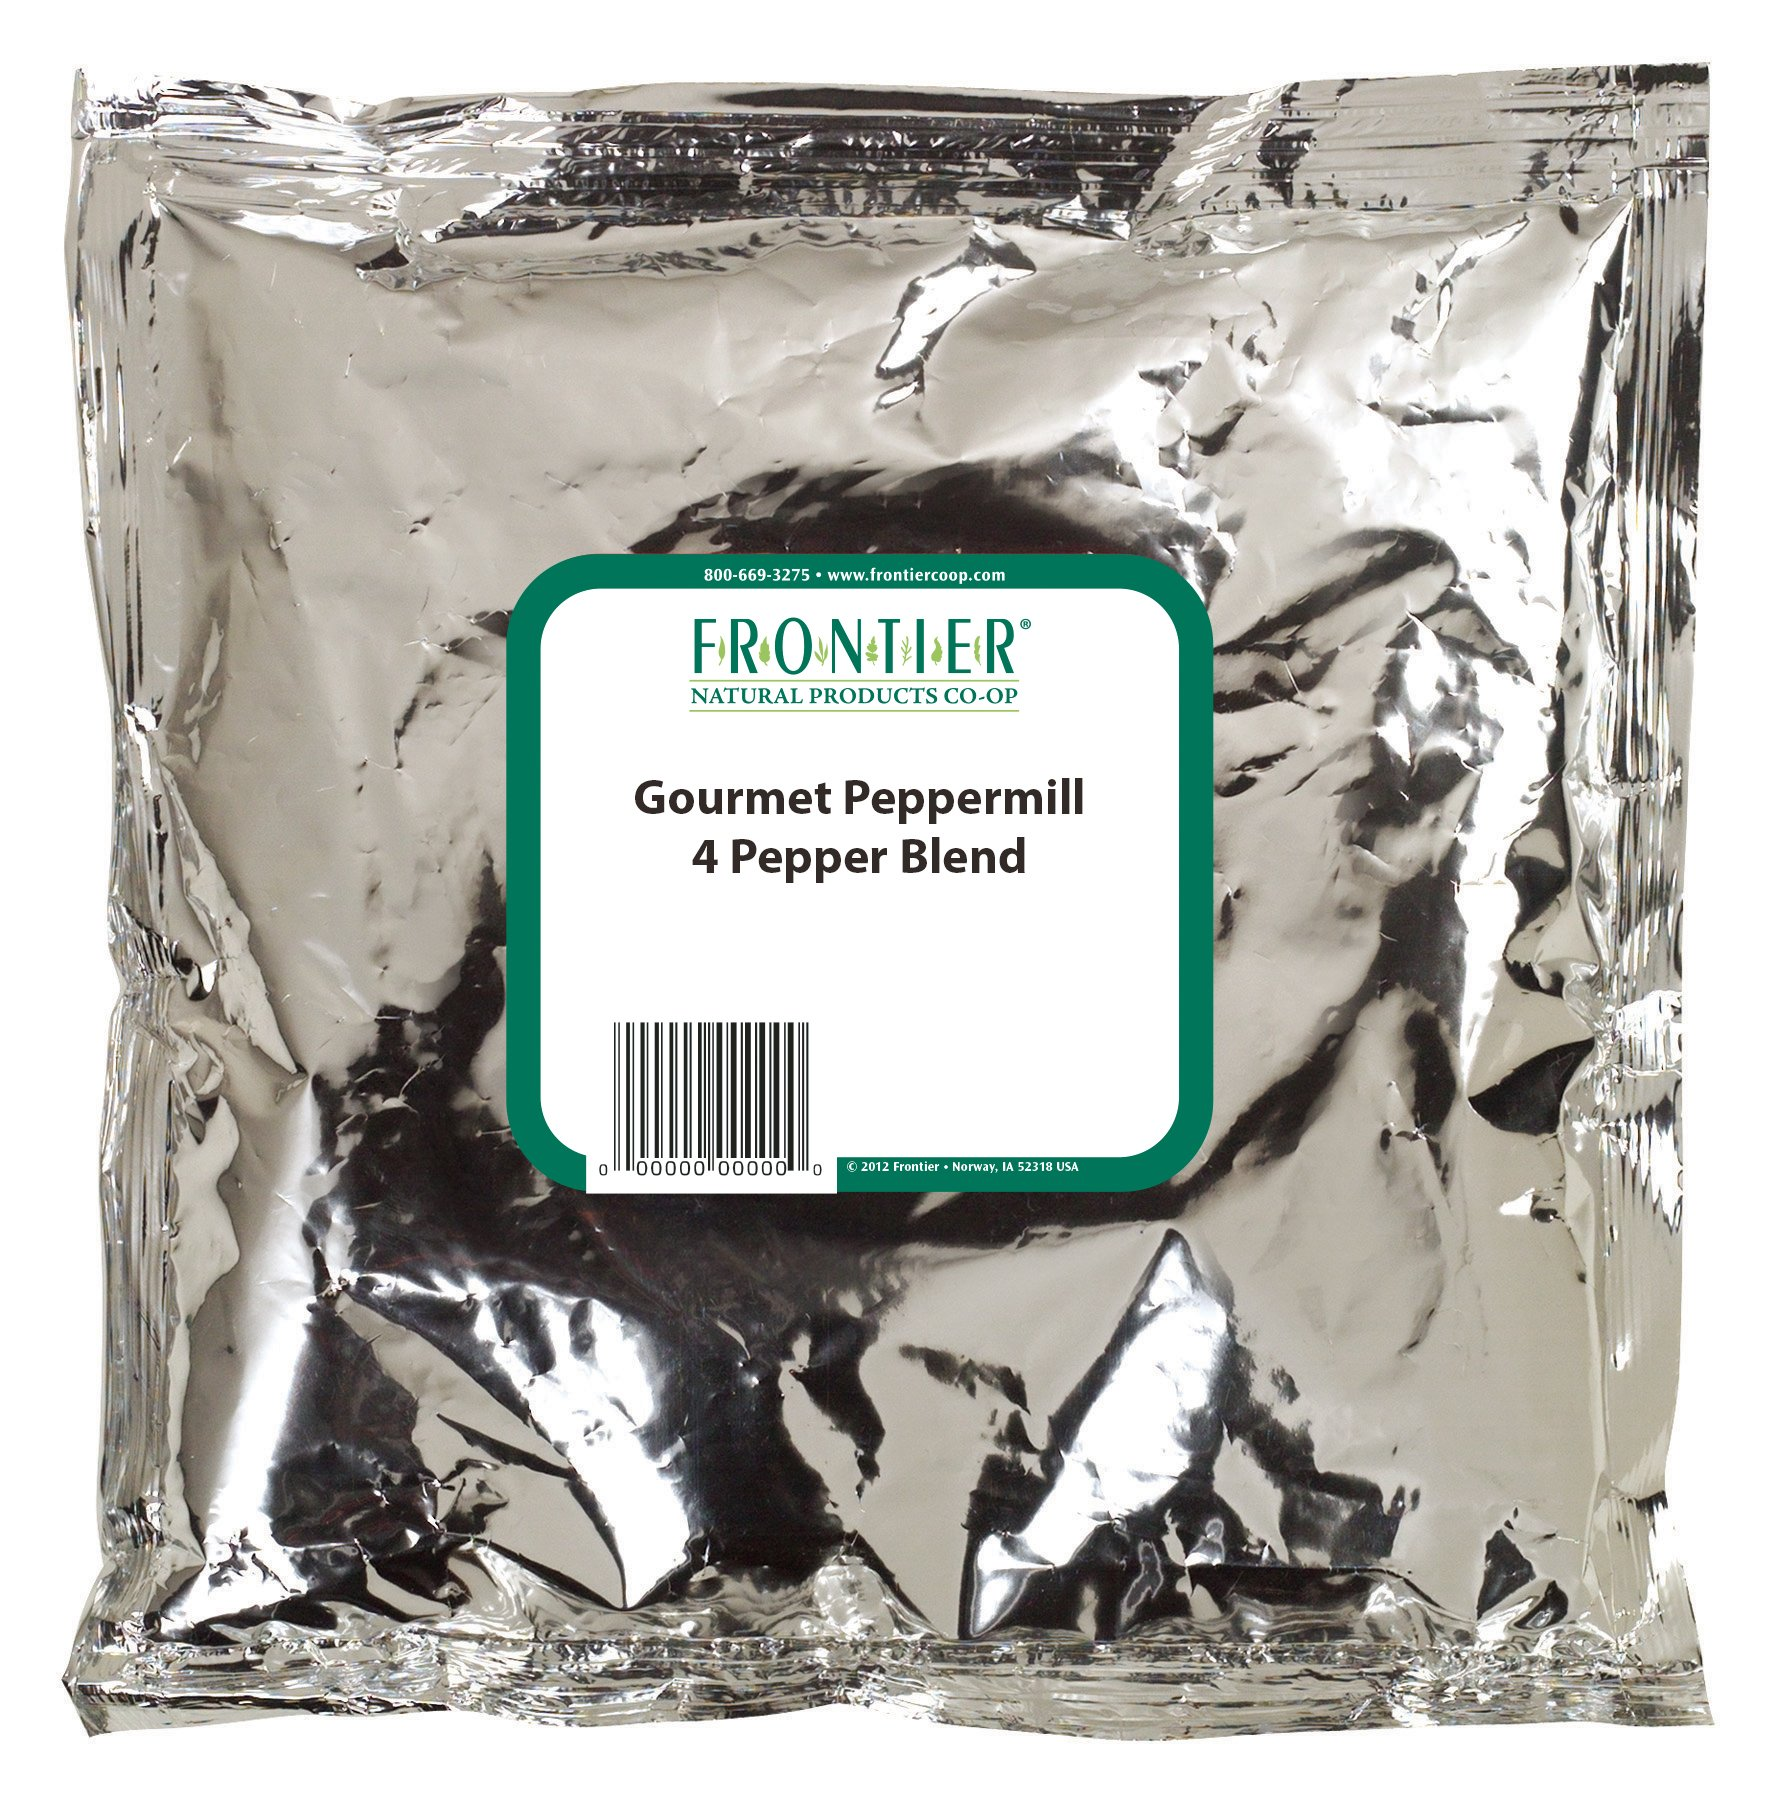 Frontier Peppermill Gourmet 4 Pepper Blend, 16 Ounce Bag by Frontier (Image #3)